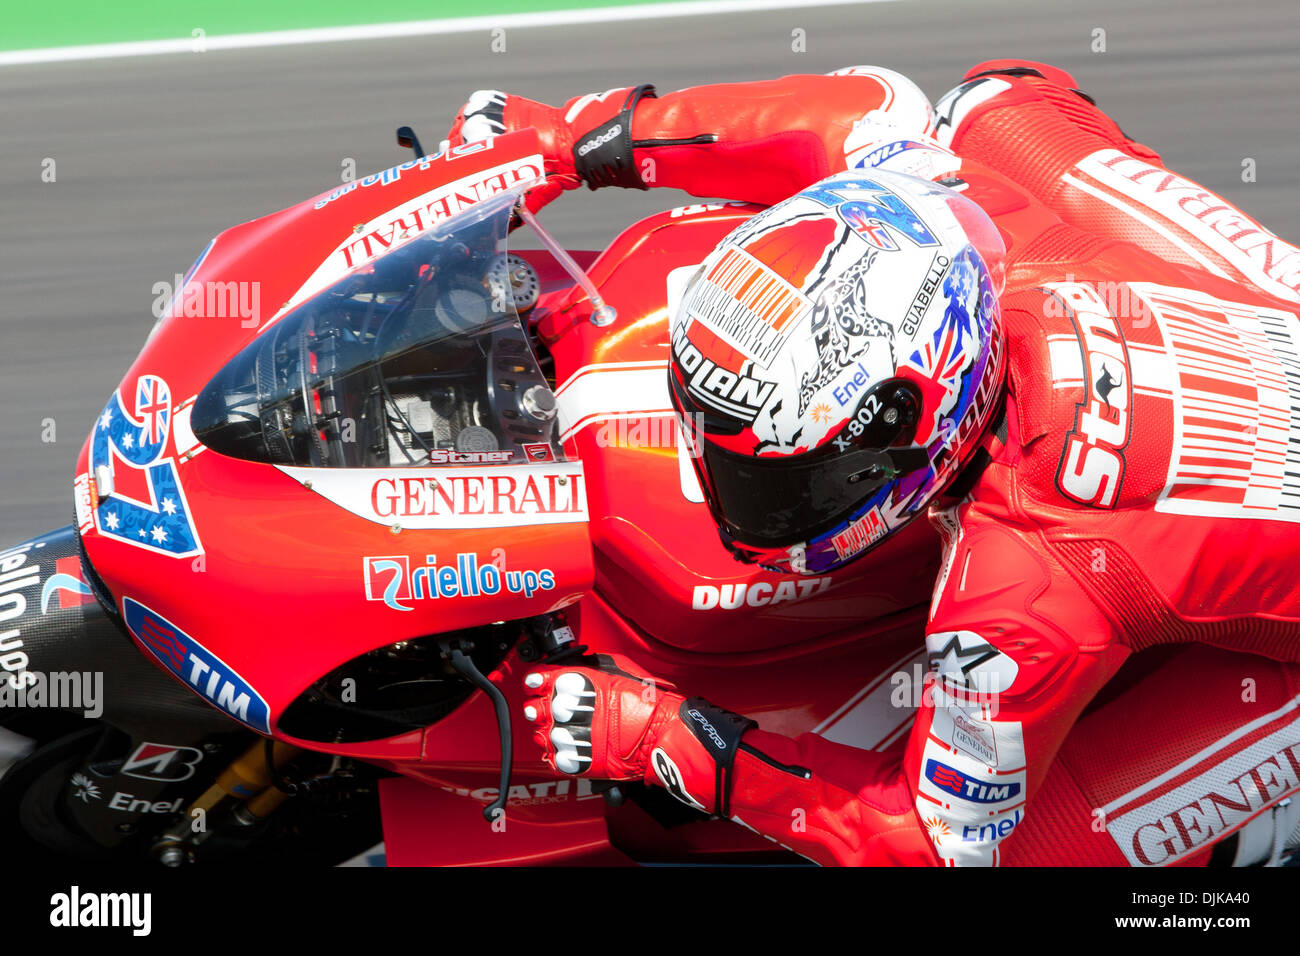 Sep. 03, 2010 - Misano Adriatico, Italy - Ducati rider Casey Stoner (AUS #27) during the first MotoGp practice session for the San Marino GP in Misano Adriatico, Italy. Stoner finished the practice at the 8th place. (Credit Image: © Andrea Ranalli/Southcreek Global/ZUMApress.com) - Stock Image